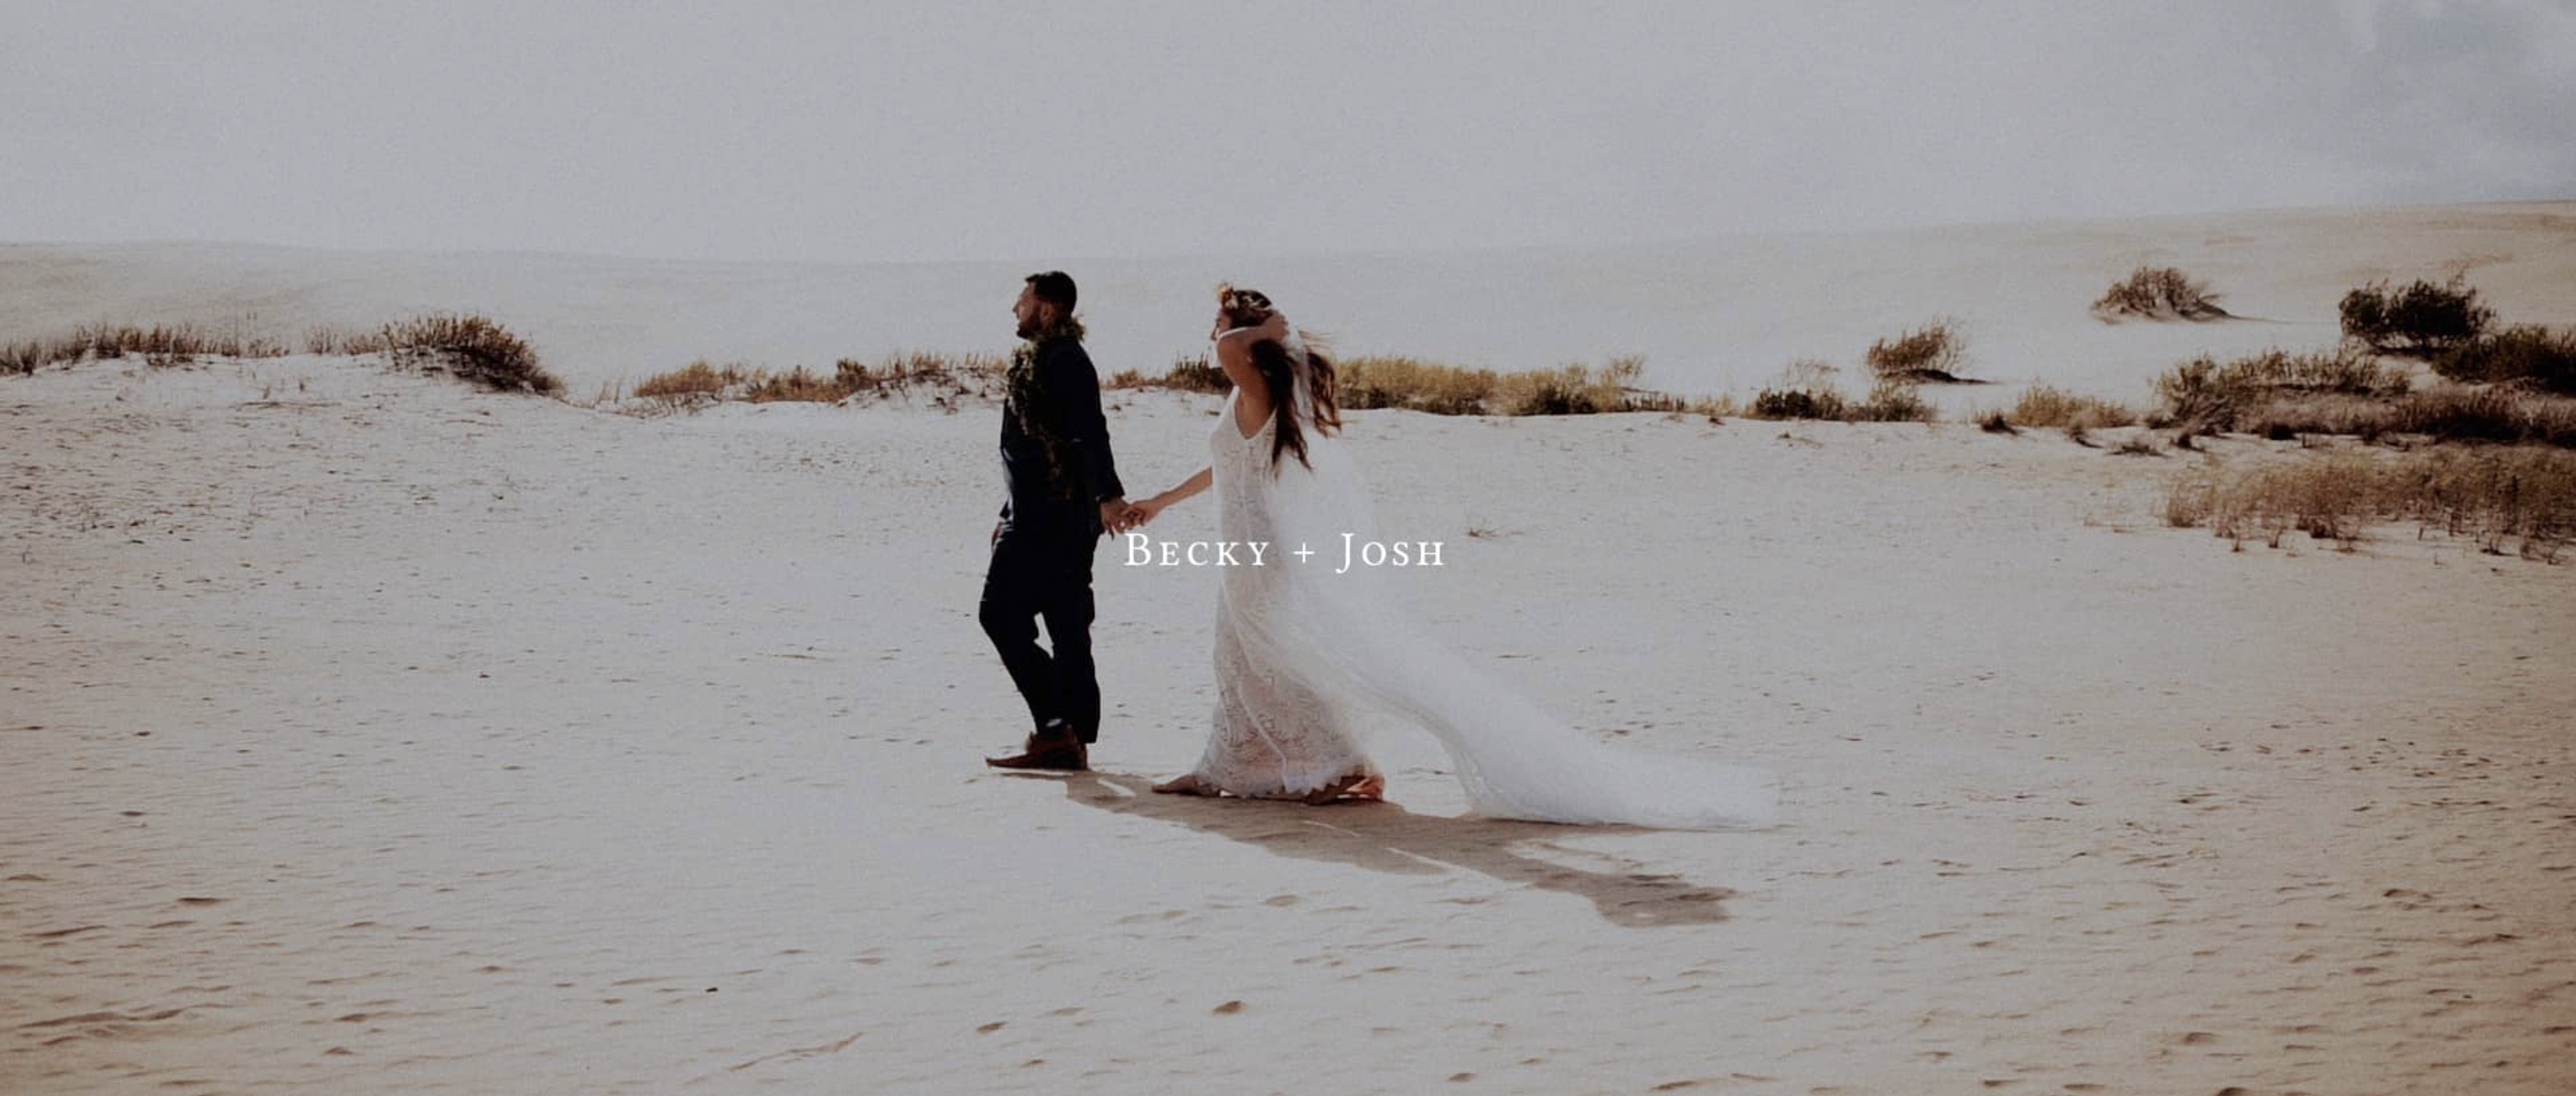 Becky + Josh | North Carolina, North Carolina | Beach